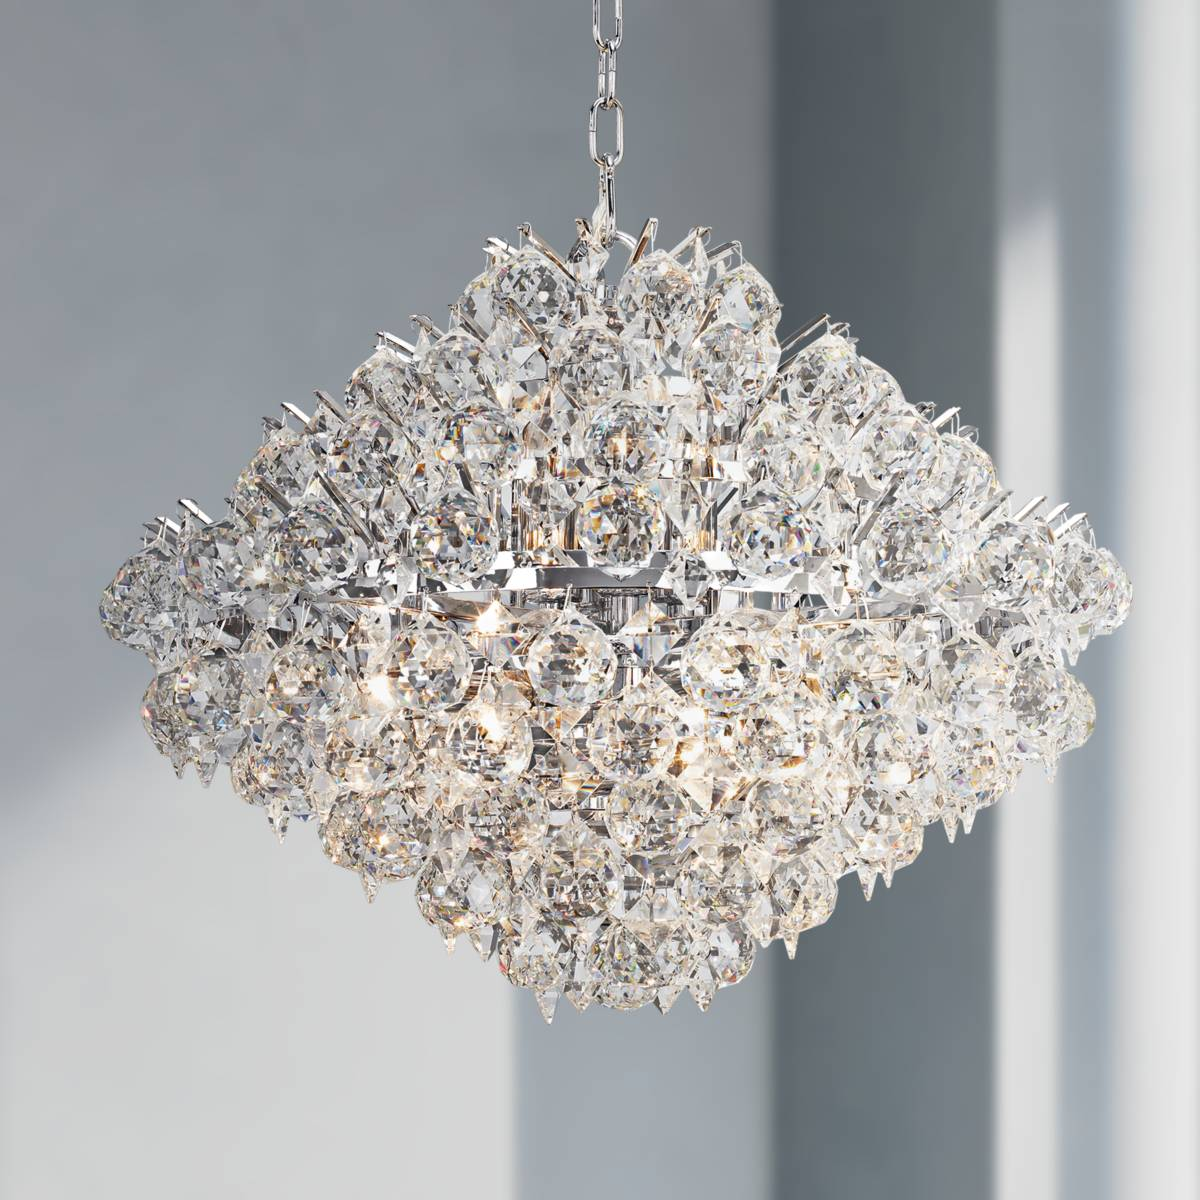 Small Crystal Chandeliers Little Luxurious Chandelier Looks Lamps Plus